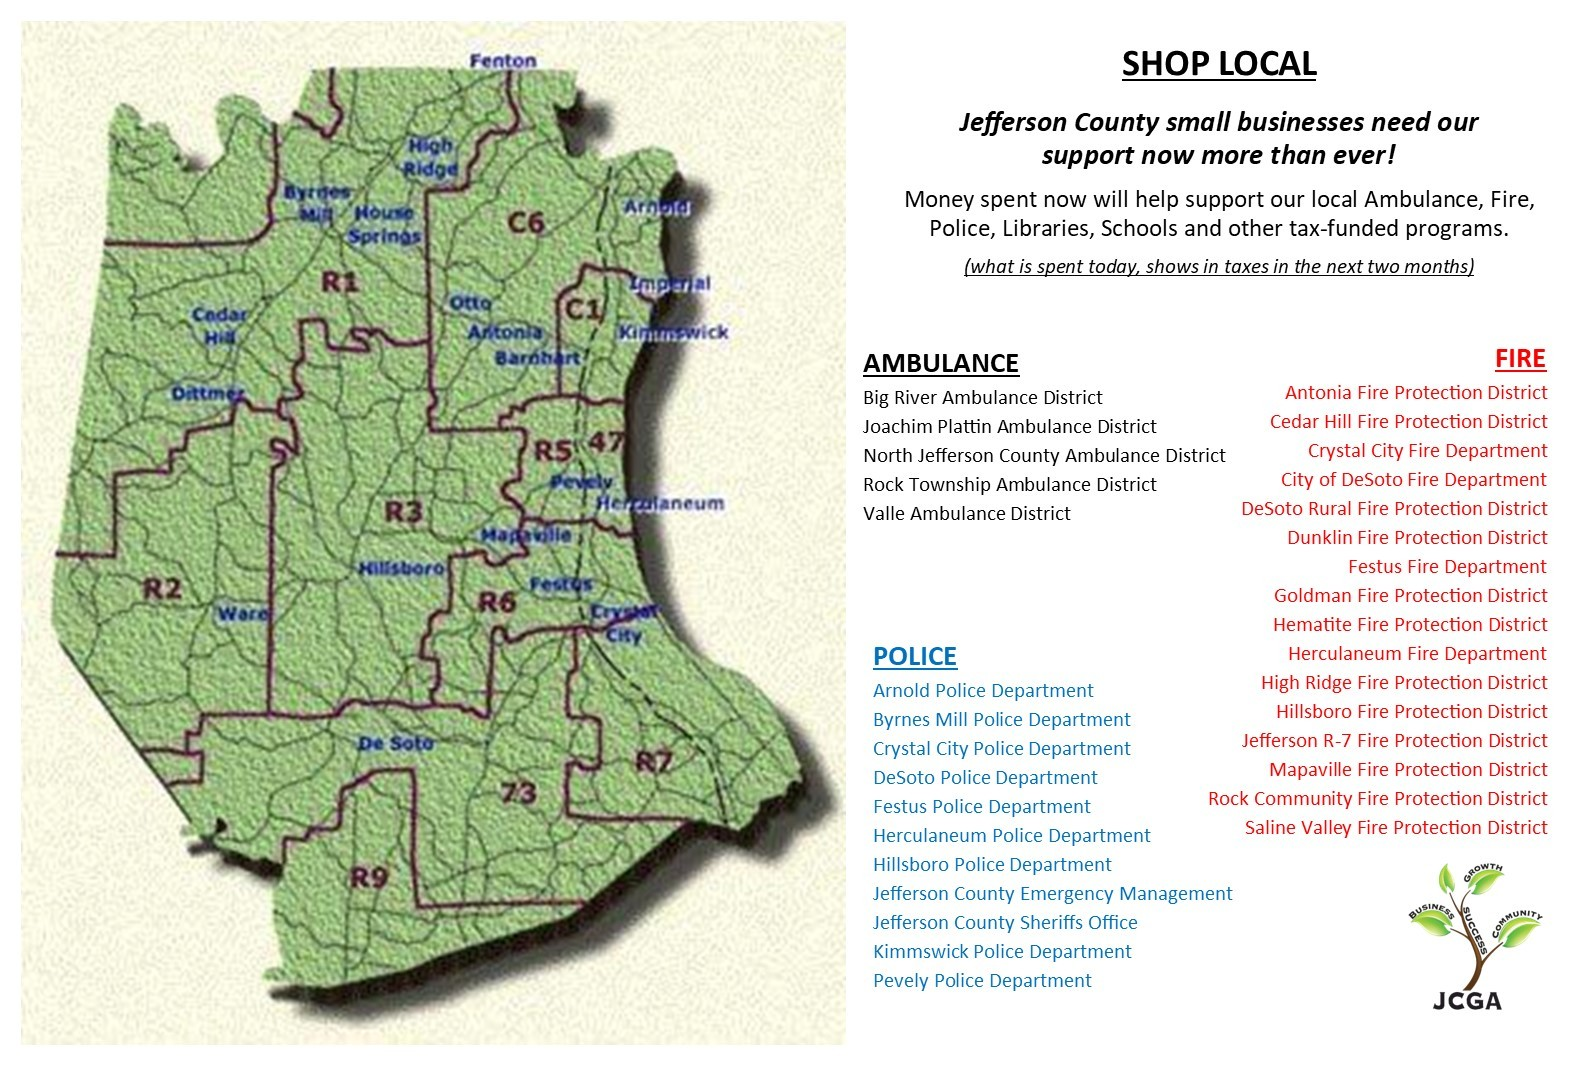 Map of Jeff. County Shop Local with fire police ambulance - for PowerPoint presentation